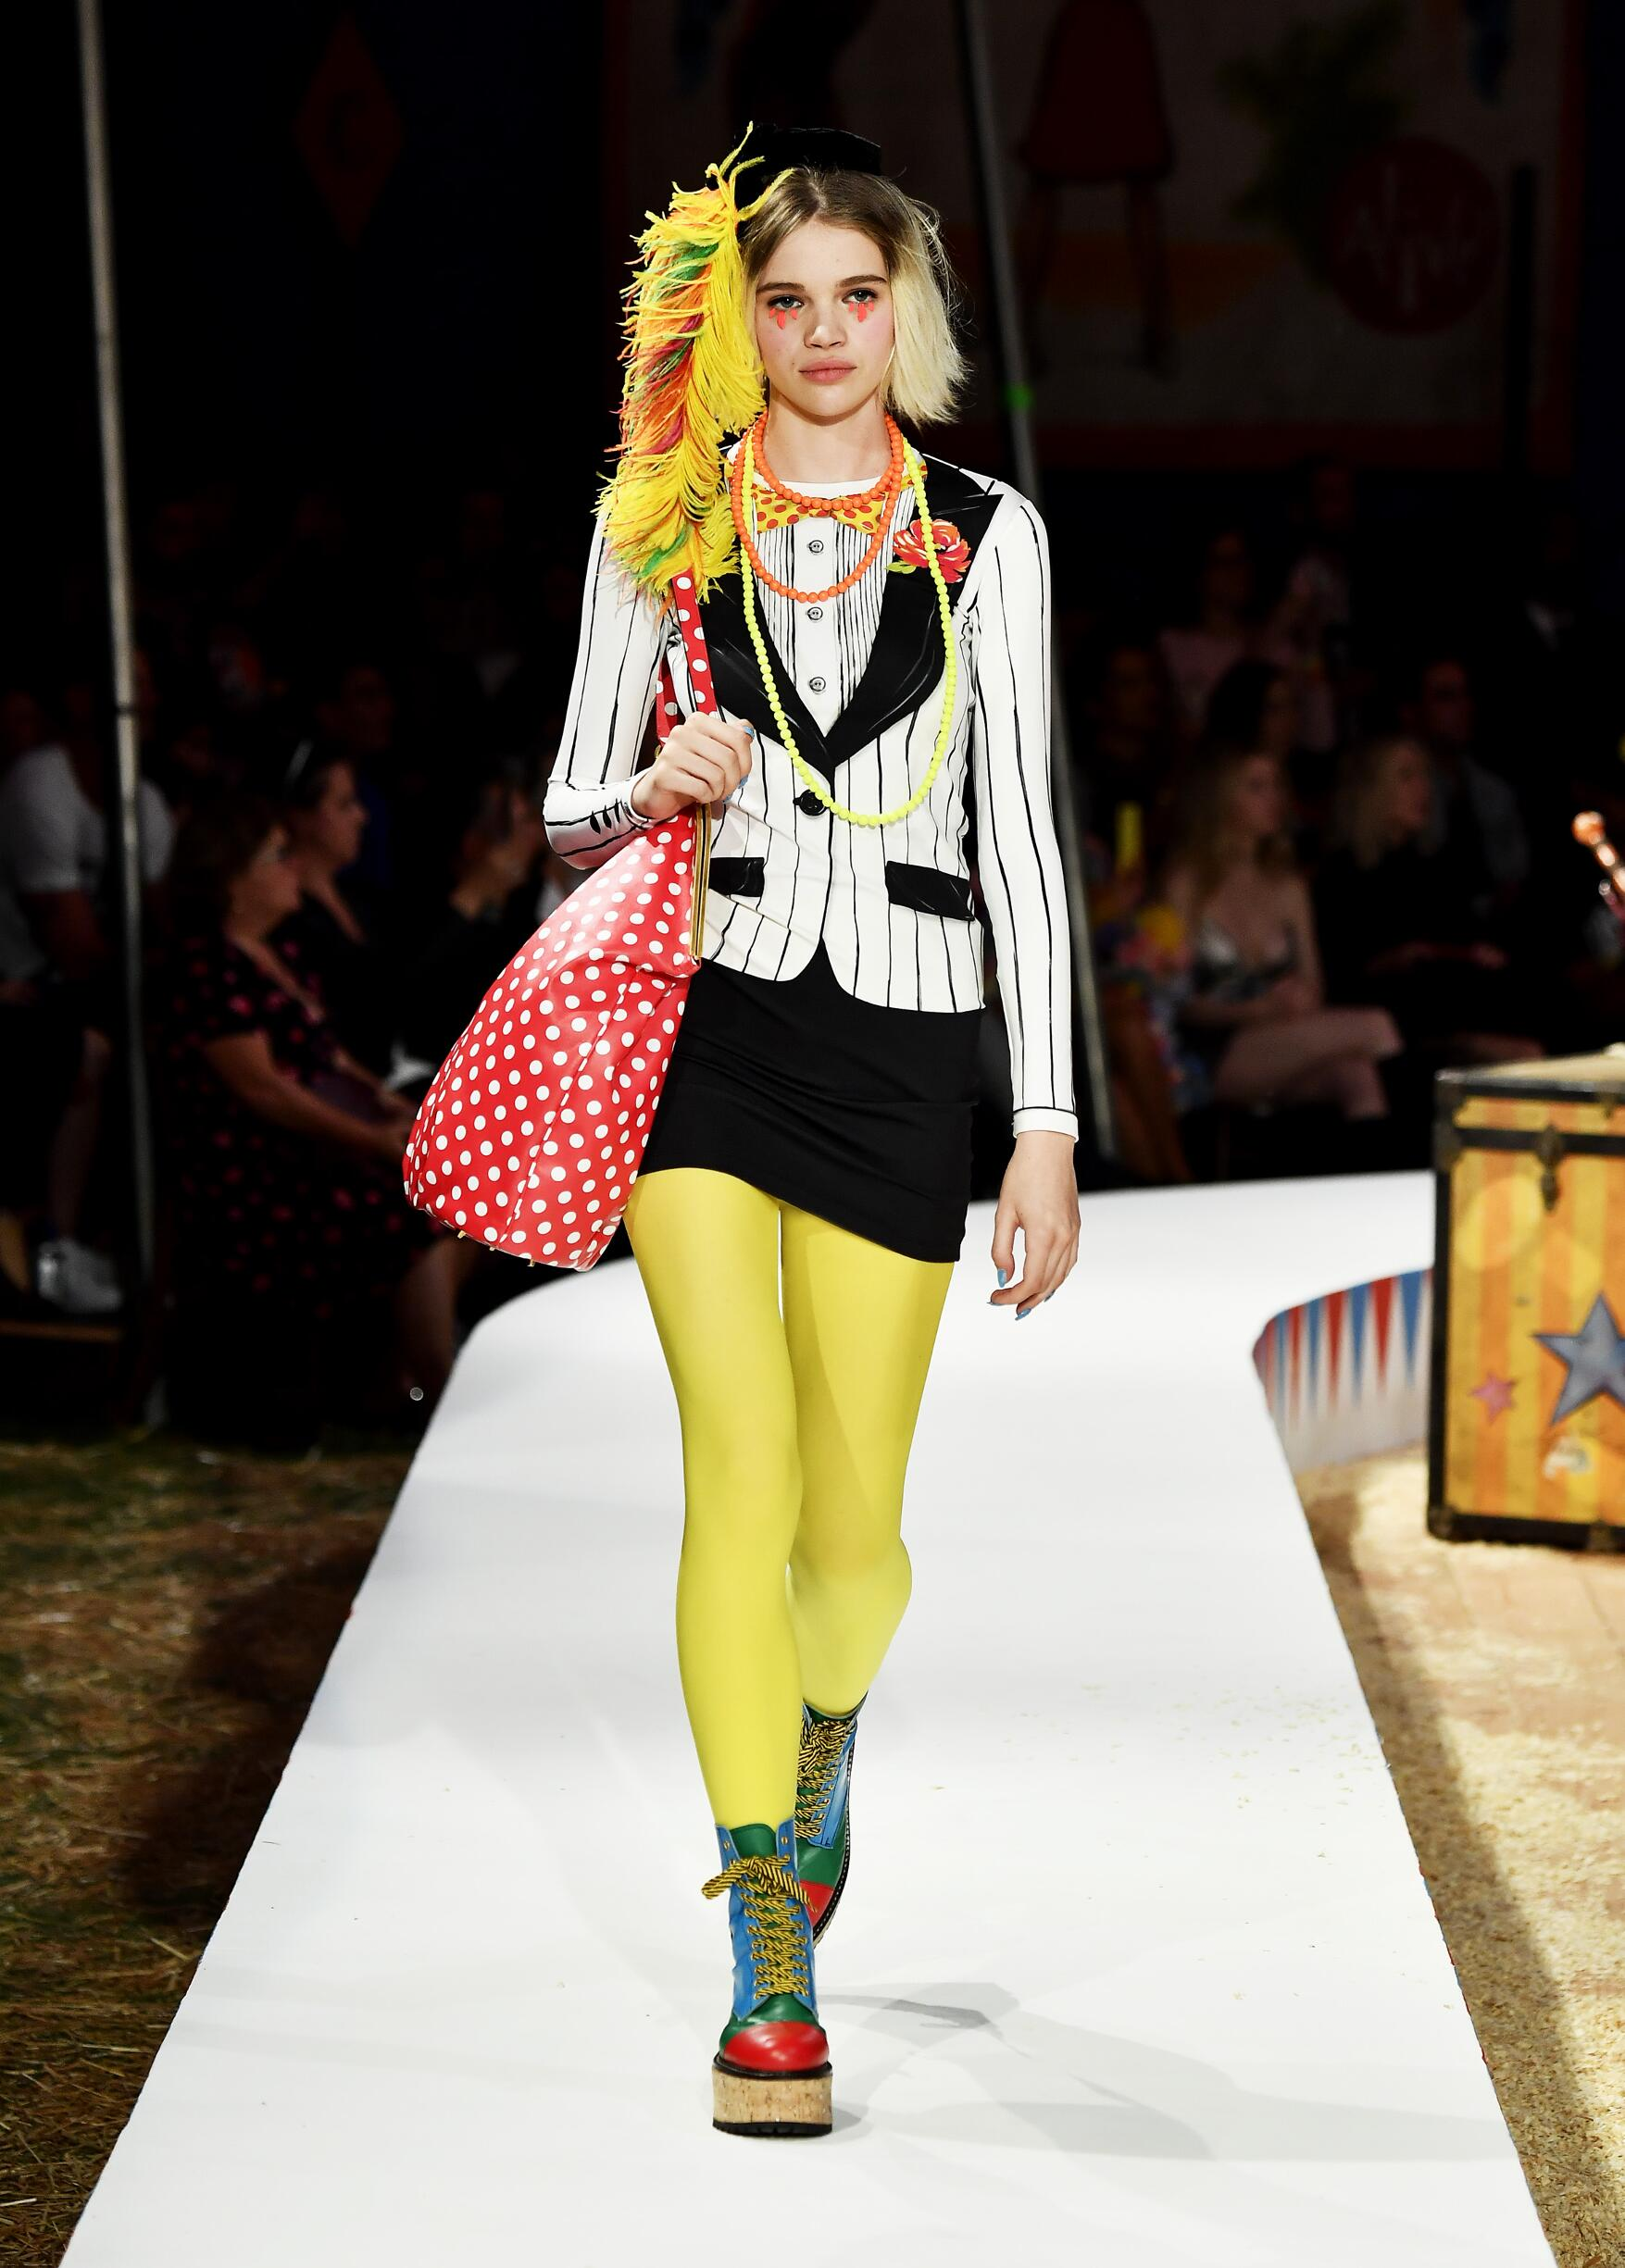 Moschino Spring Summer 2019 Menswear and Women's Resort Collection Look 47 Los Angeles